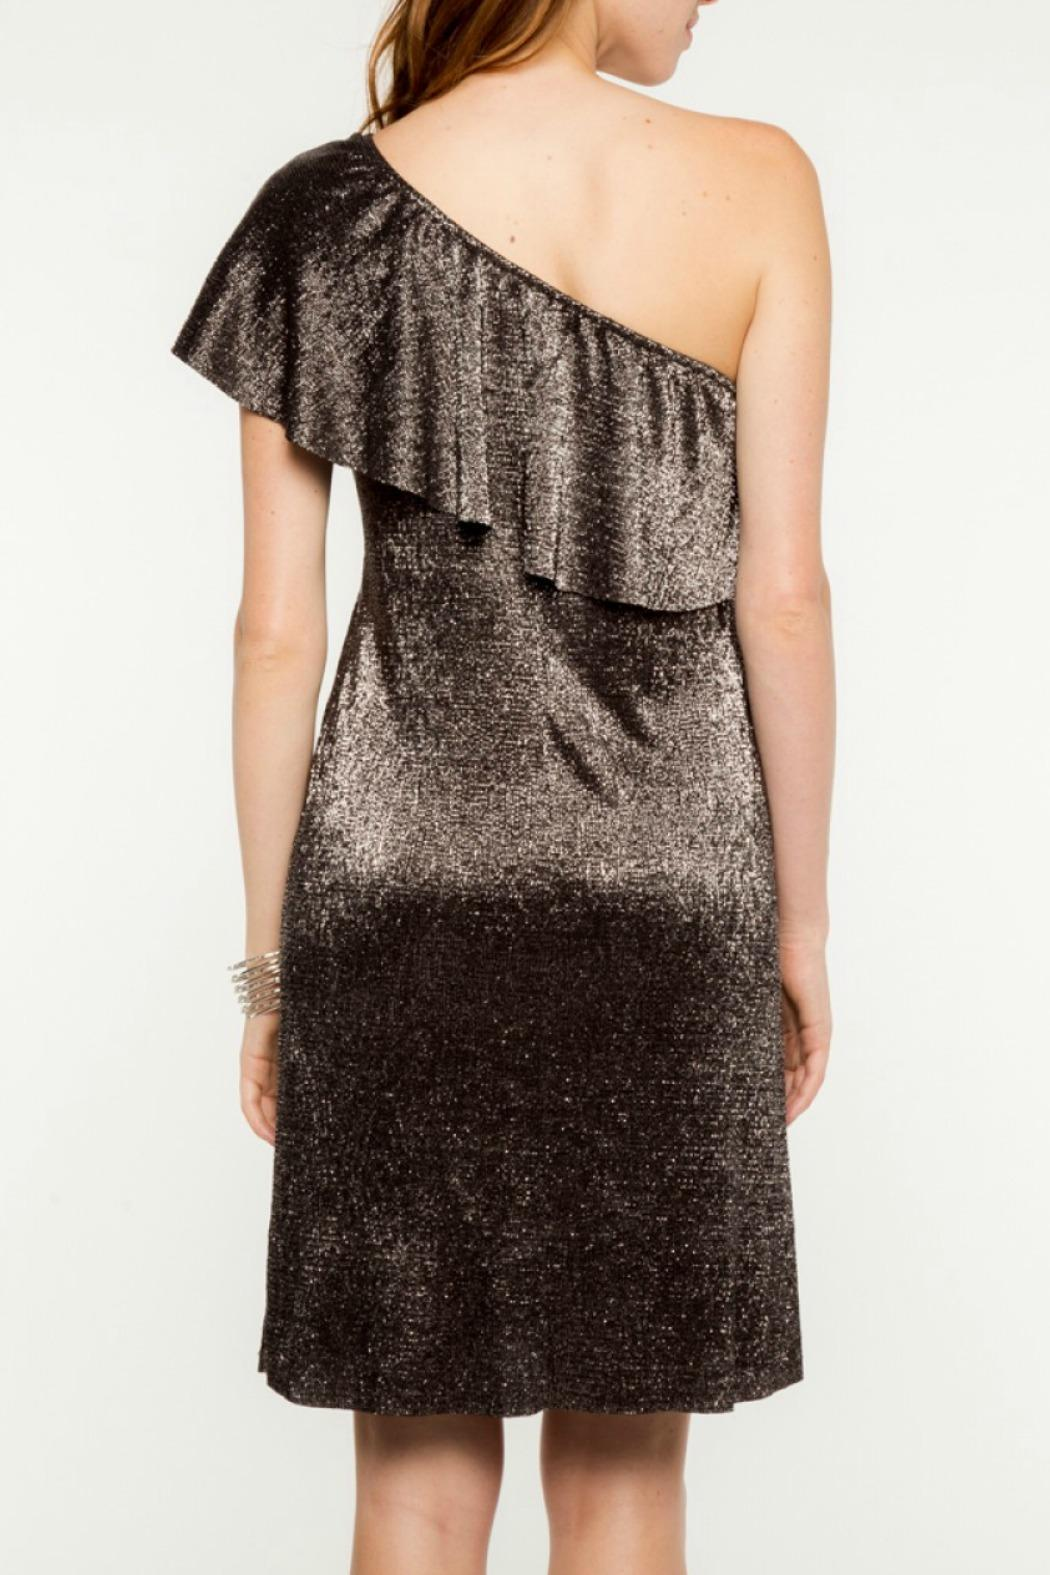 Everly Merry Metallic Dress - Side Cropped Image